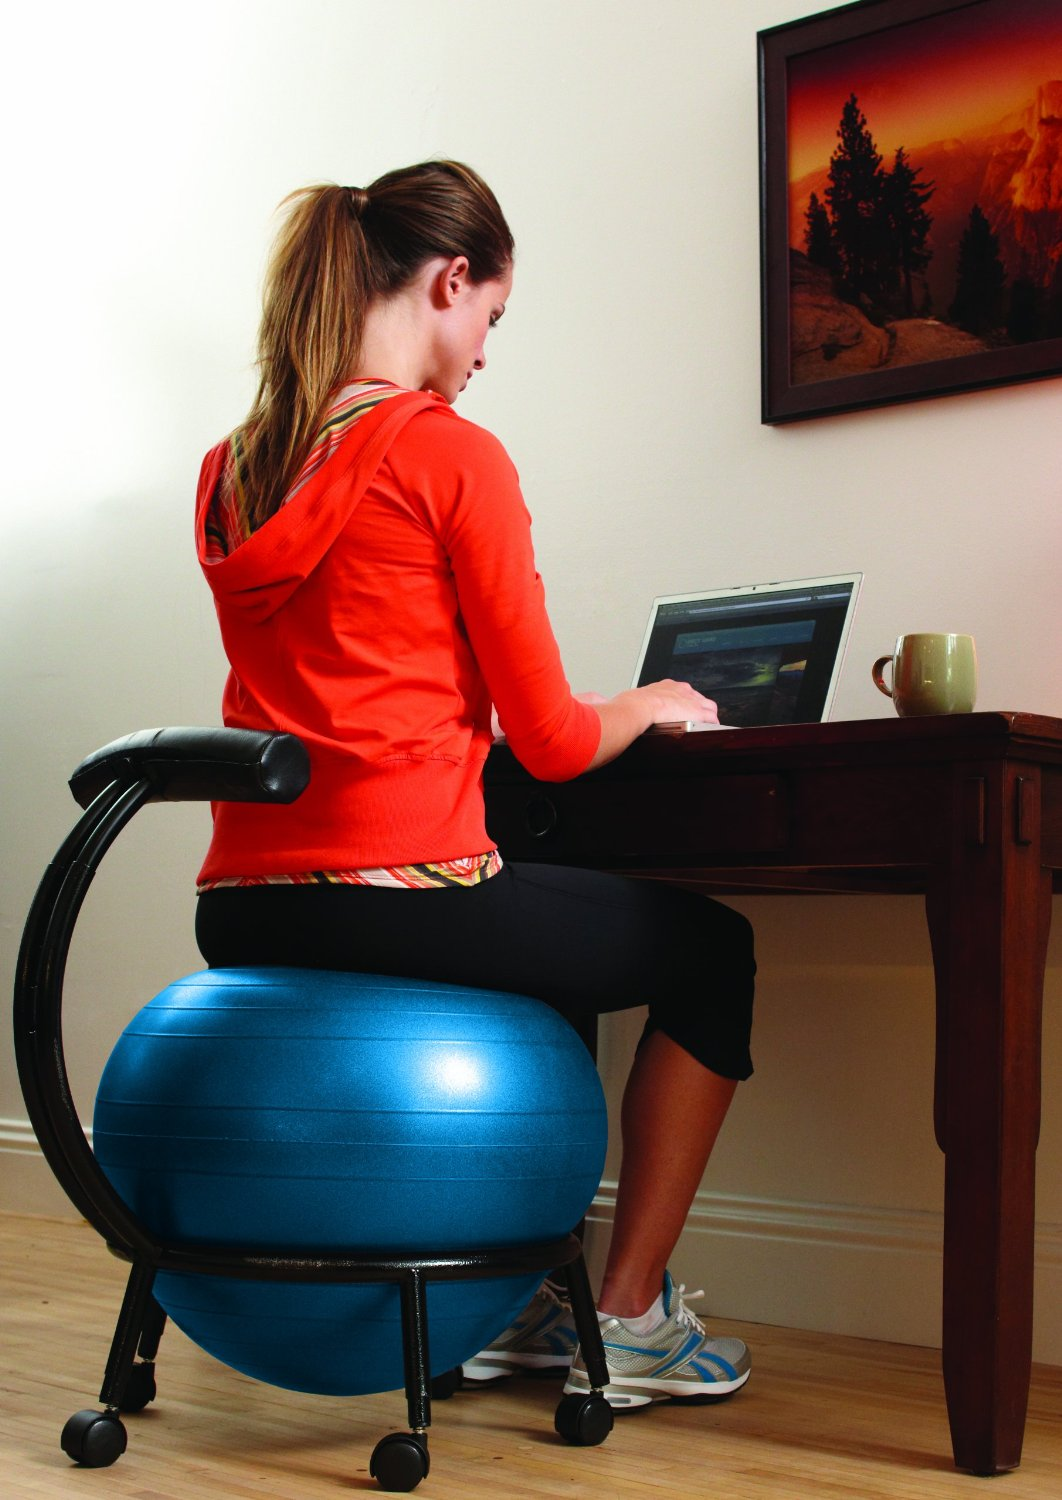 Exercise Ball Desk Chair Excercise Ball Desk Chair Oh My That 39s Awesome